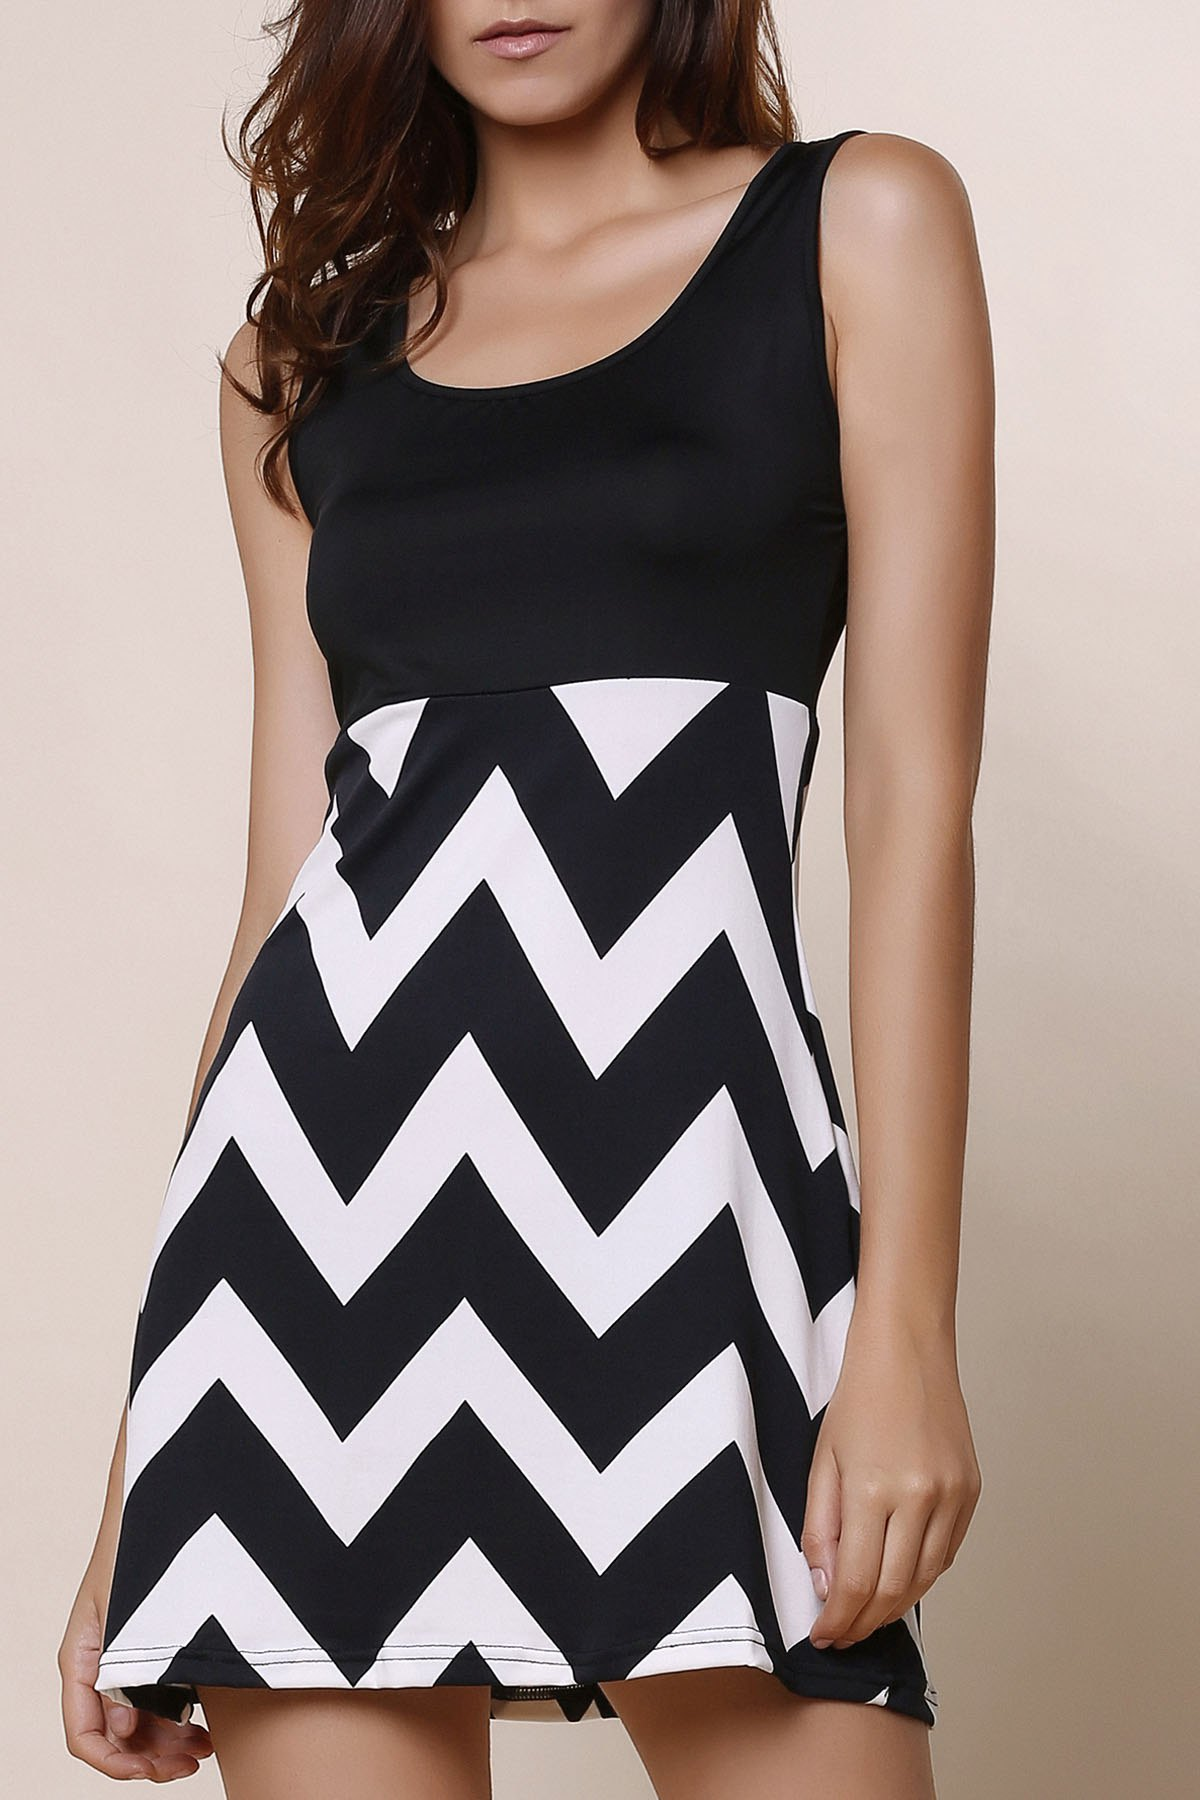 Stylish Women's Scoop Neck Sleeveless Zig Zag A-Line Dress - BLACK L